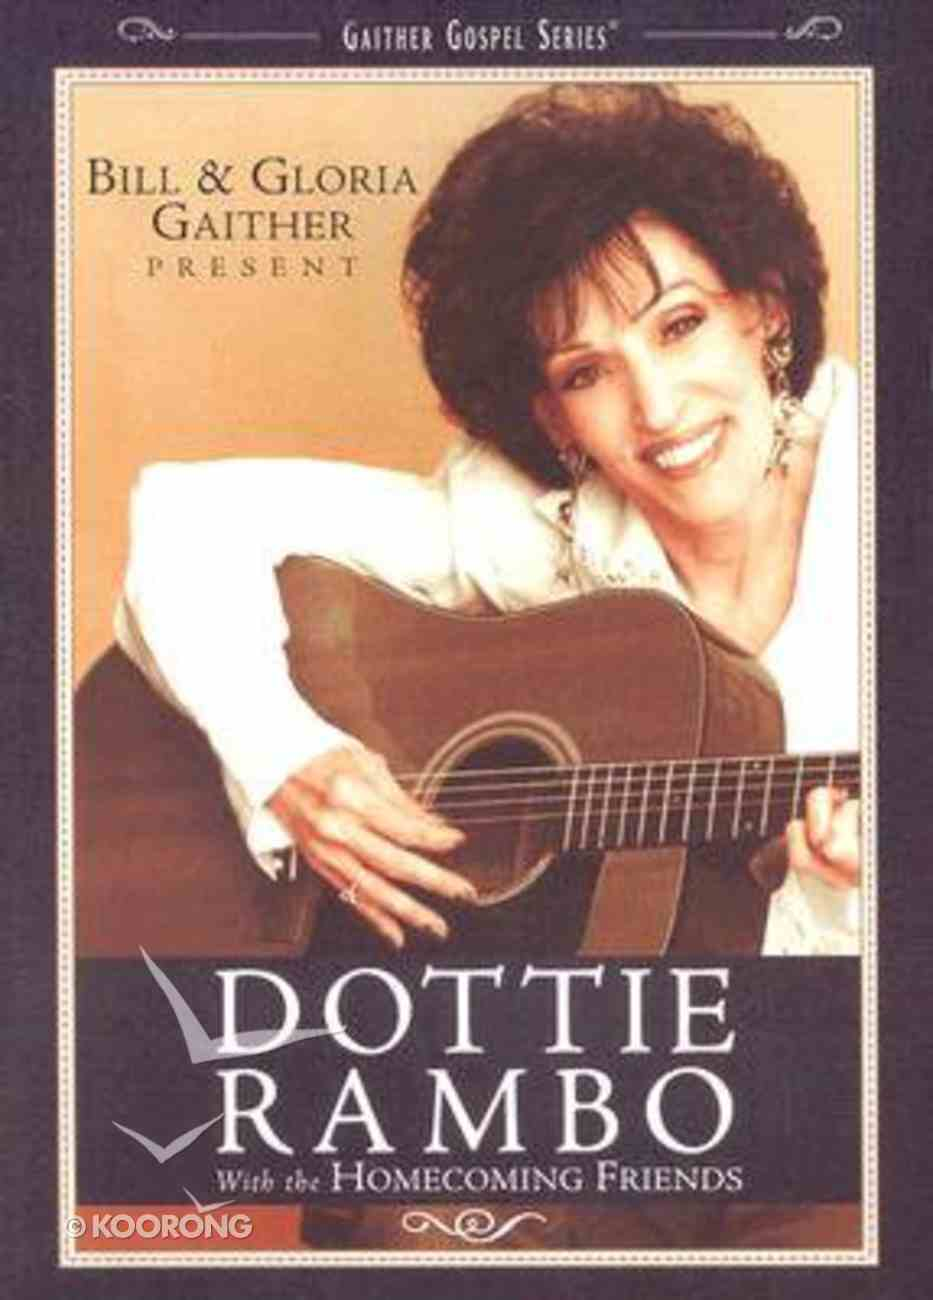 Dottie Rambo With the Homecoming Friends (Gaither Gospel Series) DVD